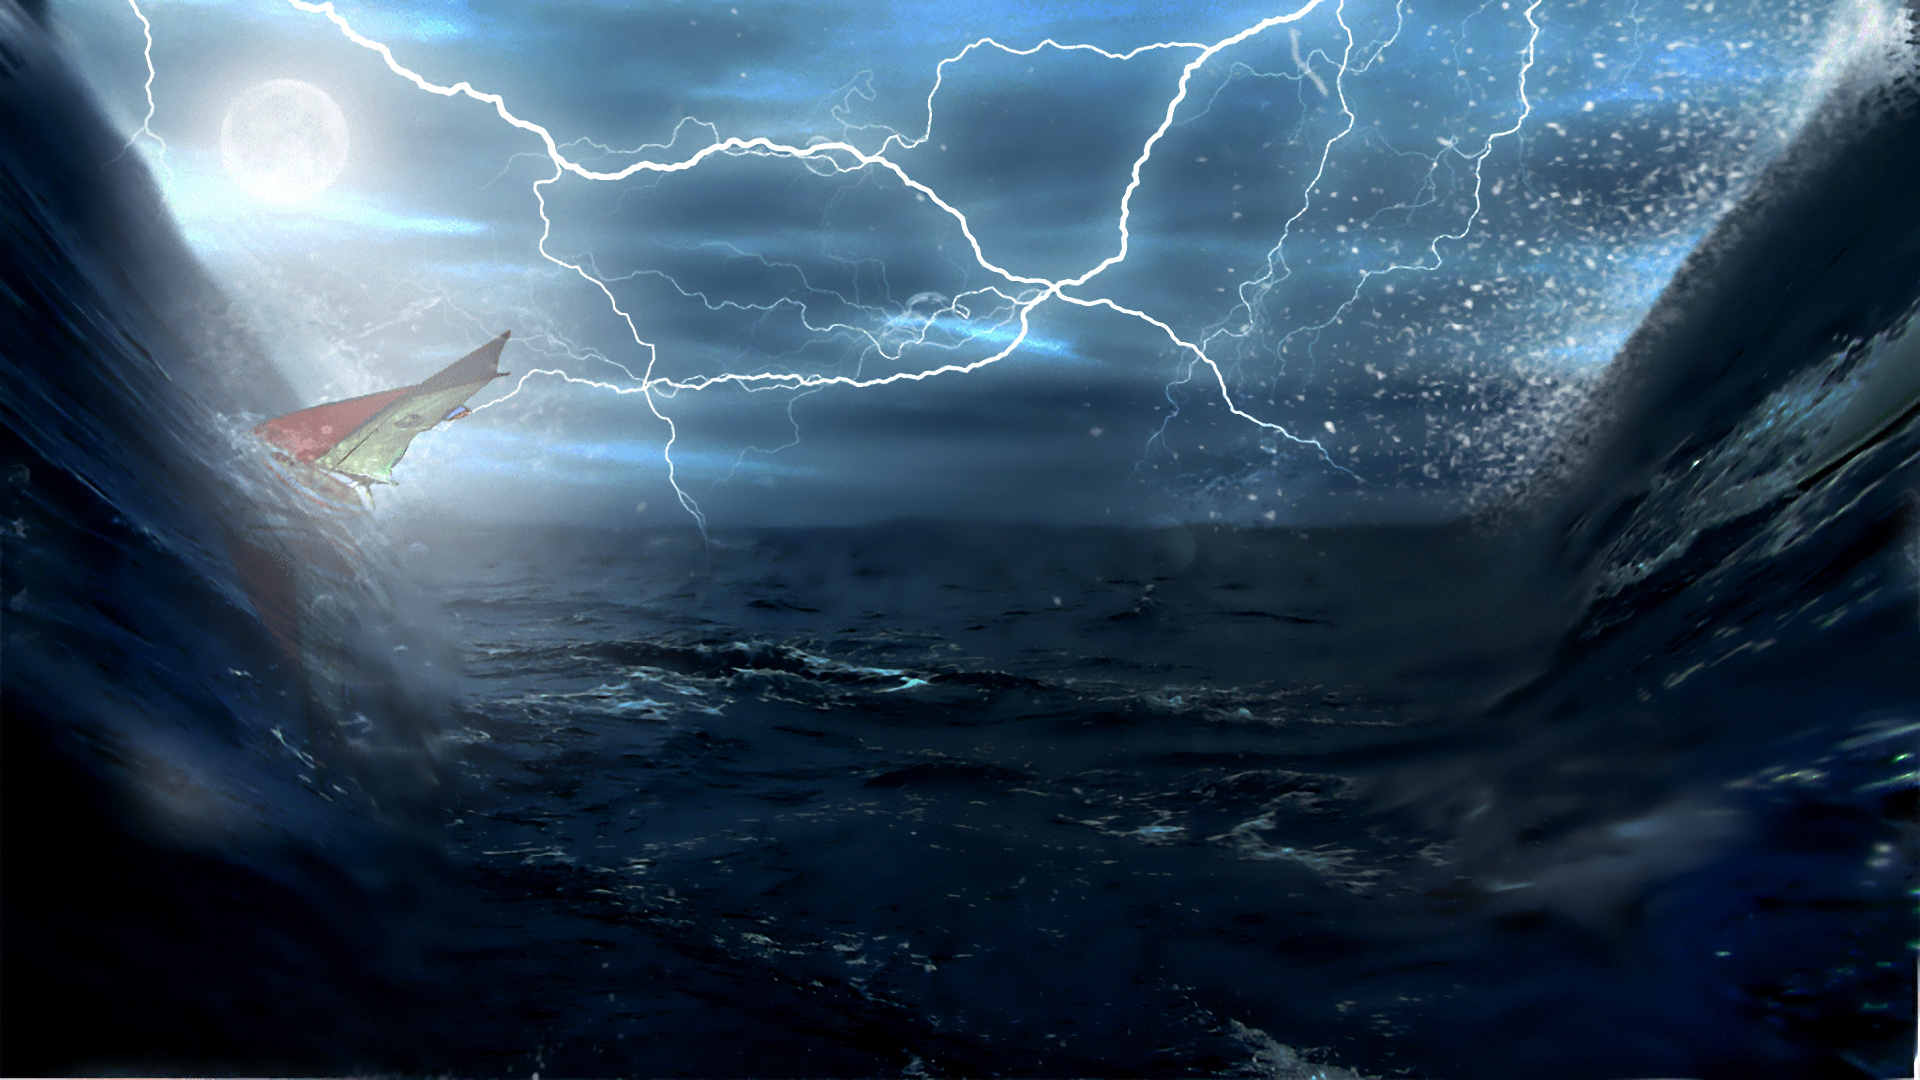 Lightning 3d Wallpaper Hd Lightning Storm Backgrounds Pixelstalk Net